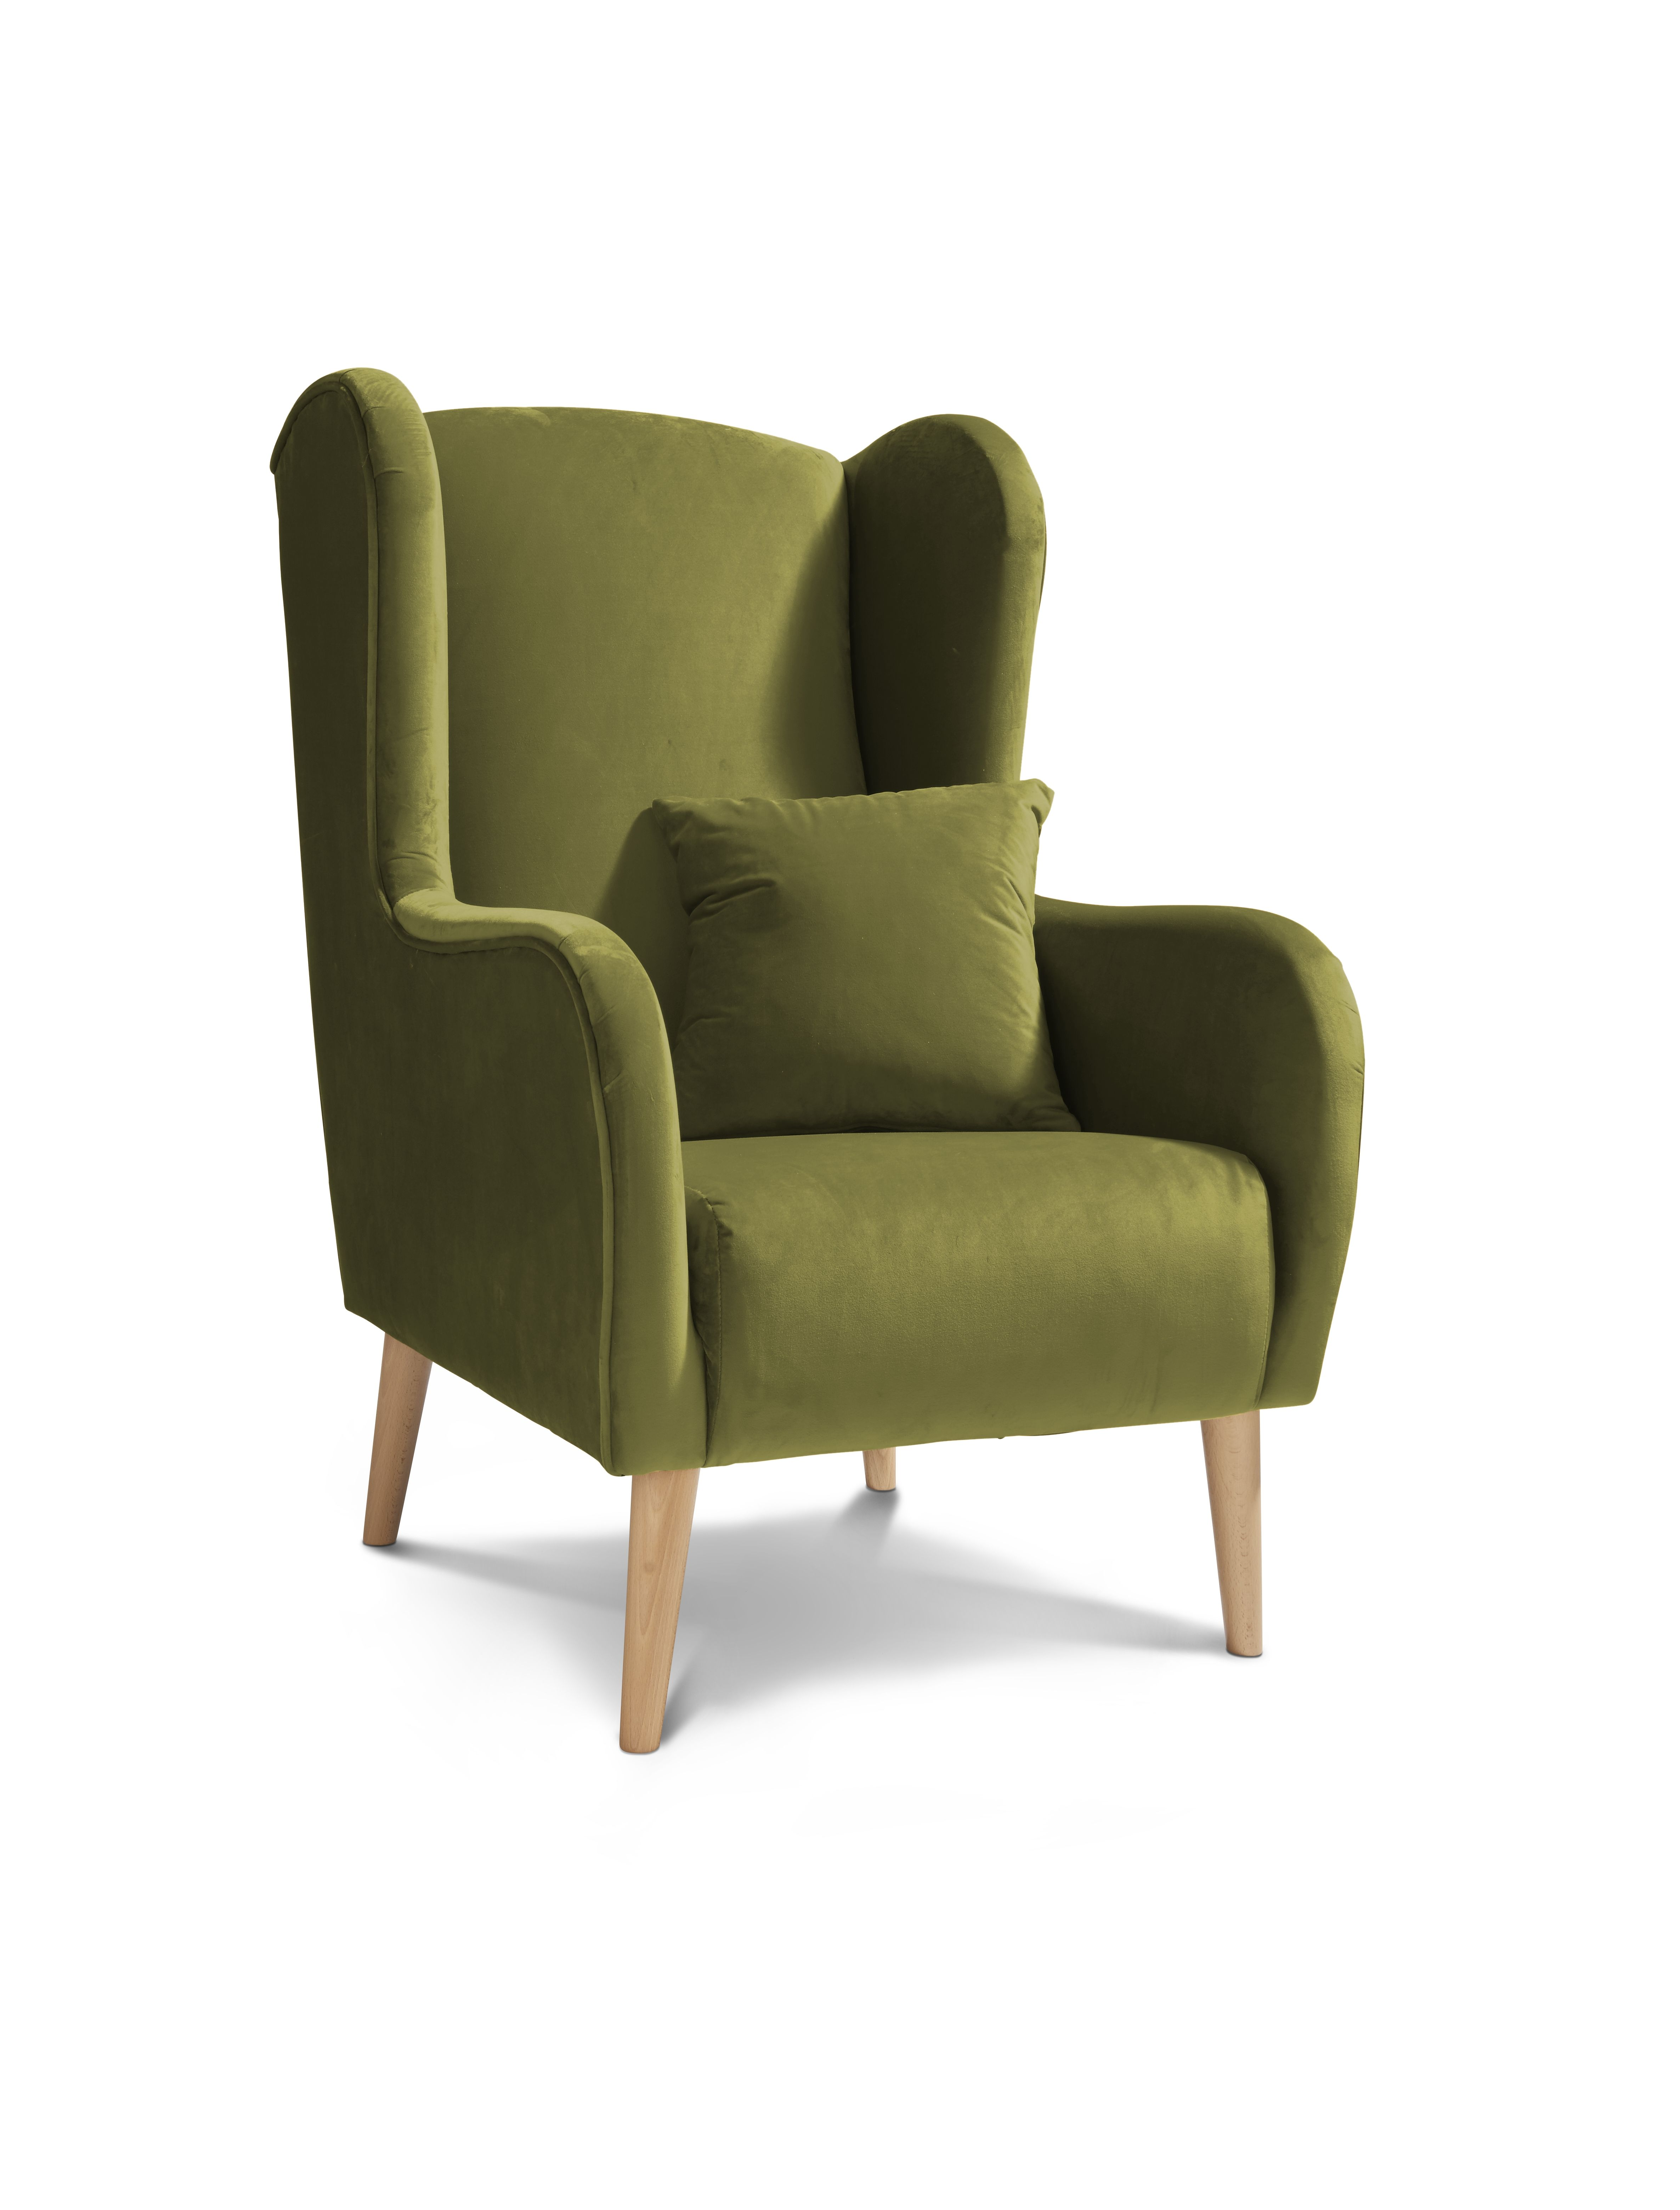 The Shelby Plush Accent Chair Is The Perfectly Plush Touch To Add A